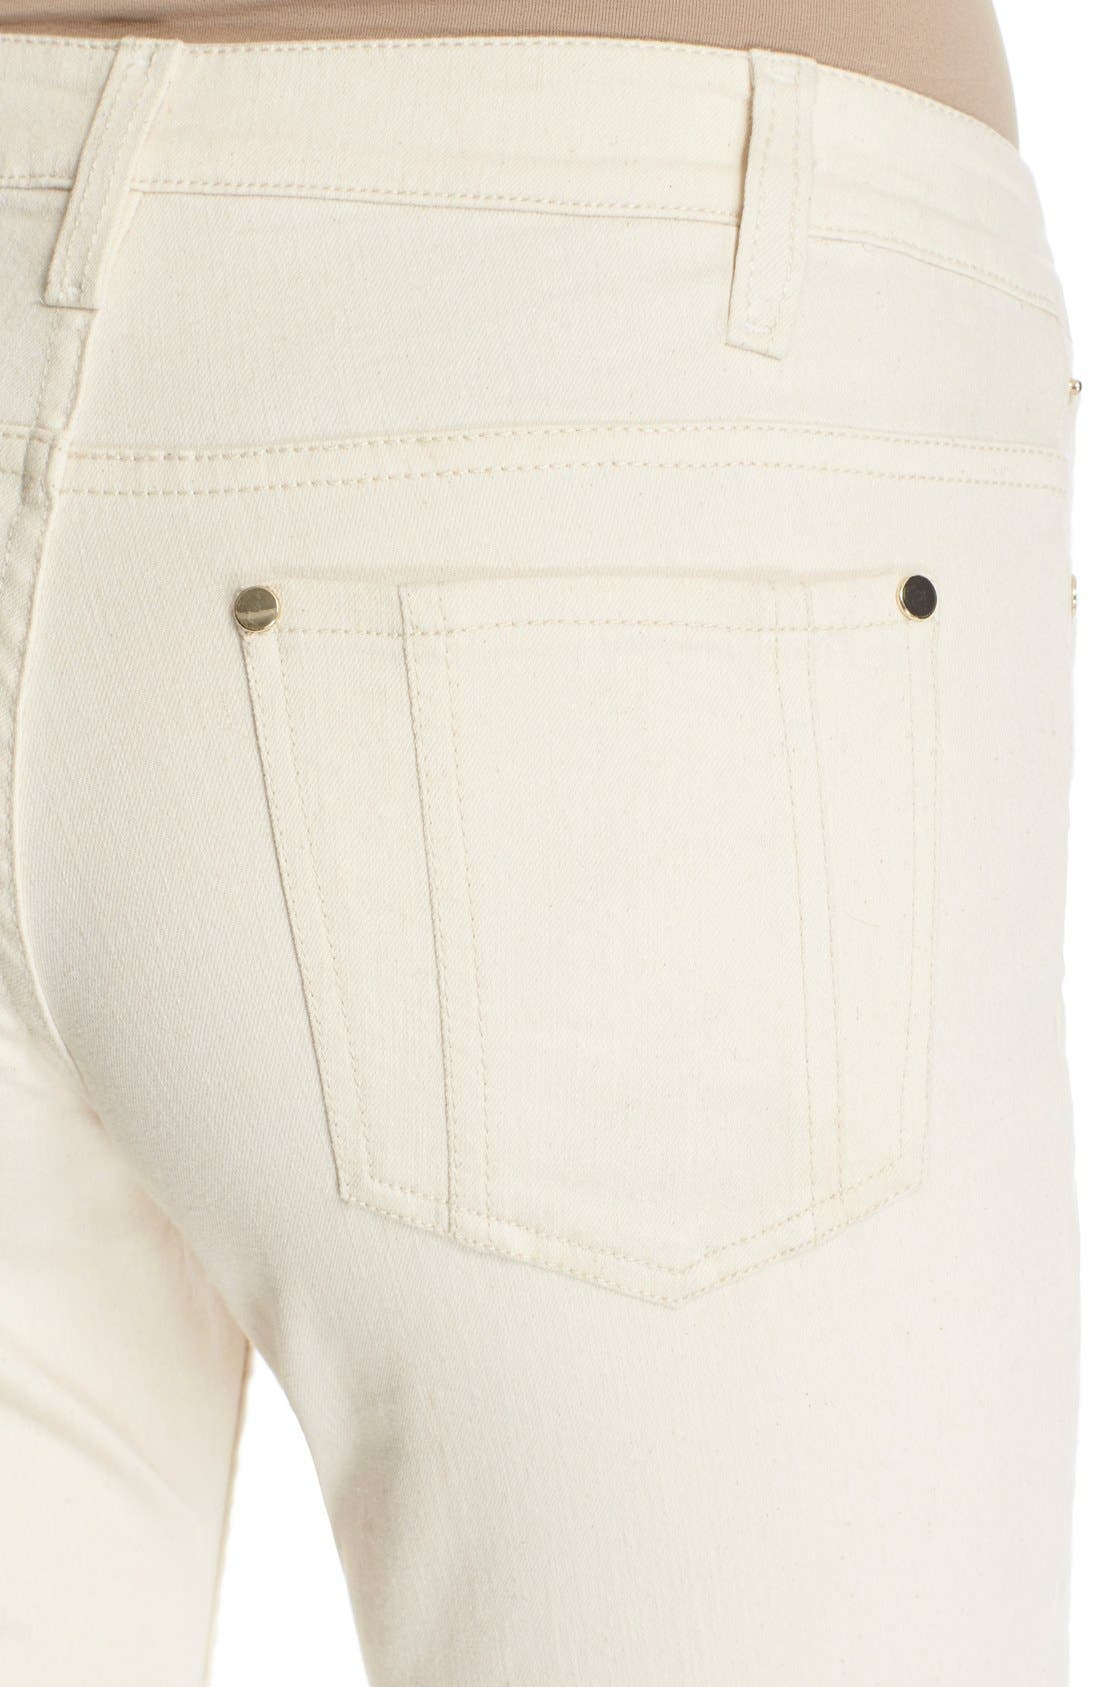 'Ryley' Embroidered Flare Jeans,                             Alternate thumbnail 4, color,                             Natural/ Multi